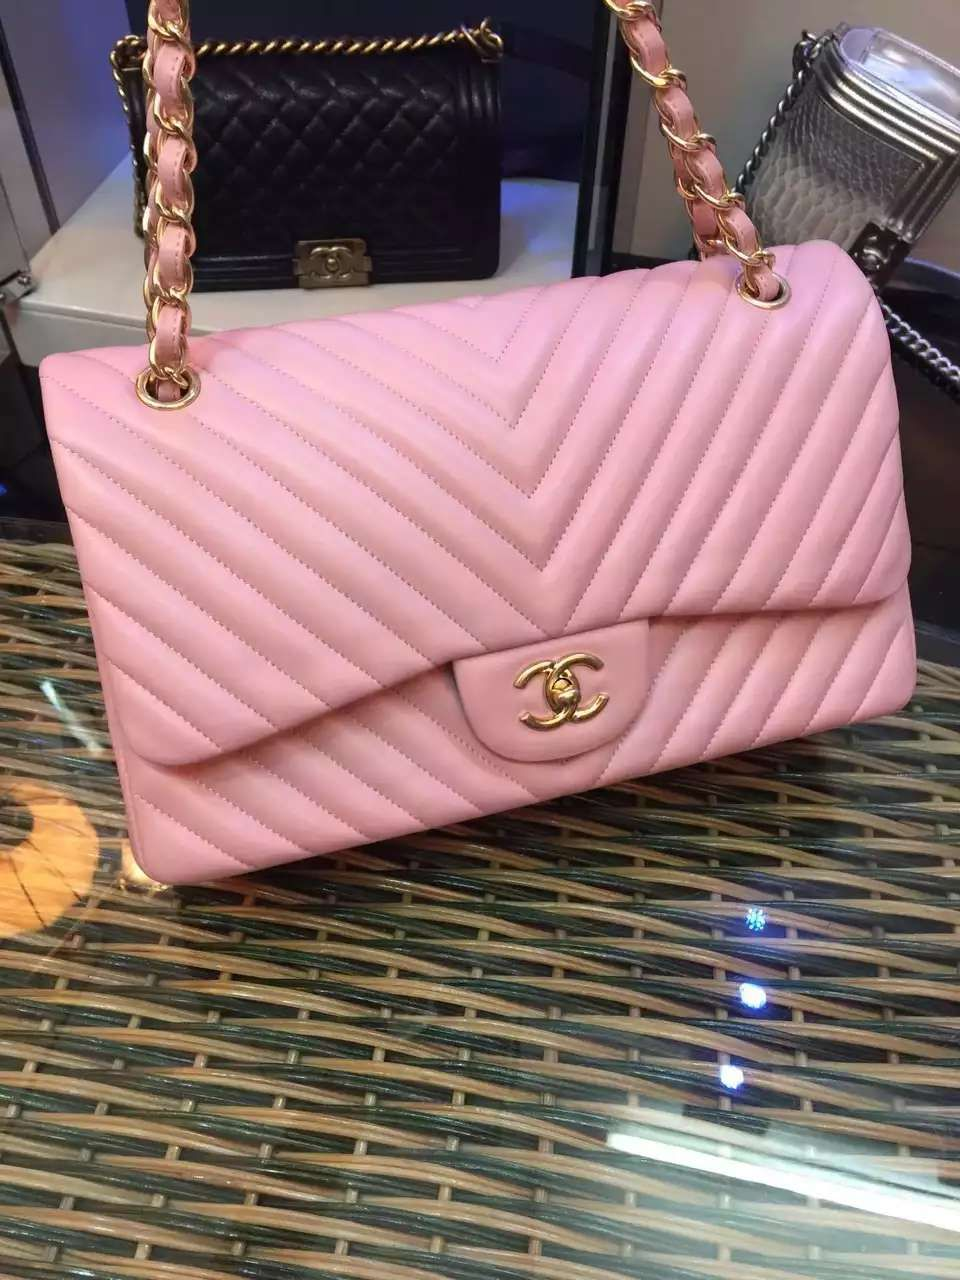 chanel Bag, ID : 38488(FORSALE:a@yybags.com), buy chanel bags, buy chanel bag, purchase chanel bags online, chanel pocketbooks, chanel handbag online shopping, chanel attache case, chanel cheap wallets, chanel official online shop, chanel original bags online shop, chanel backpack online, chanel online shop, www chanel com usa #chanelBag #chanel #chanel #pink #backpack